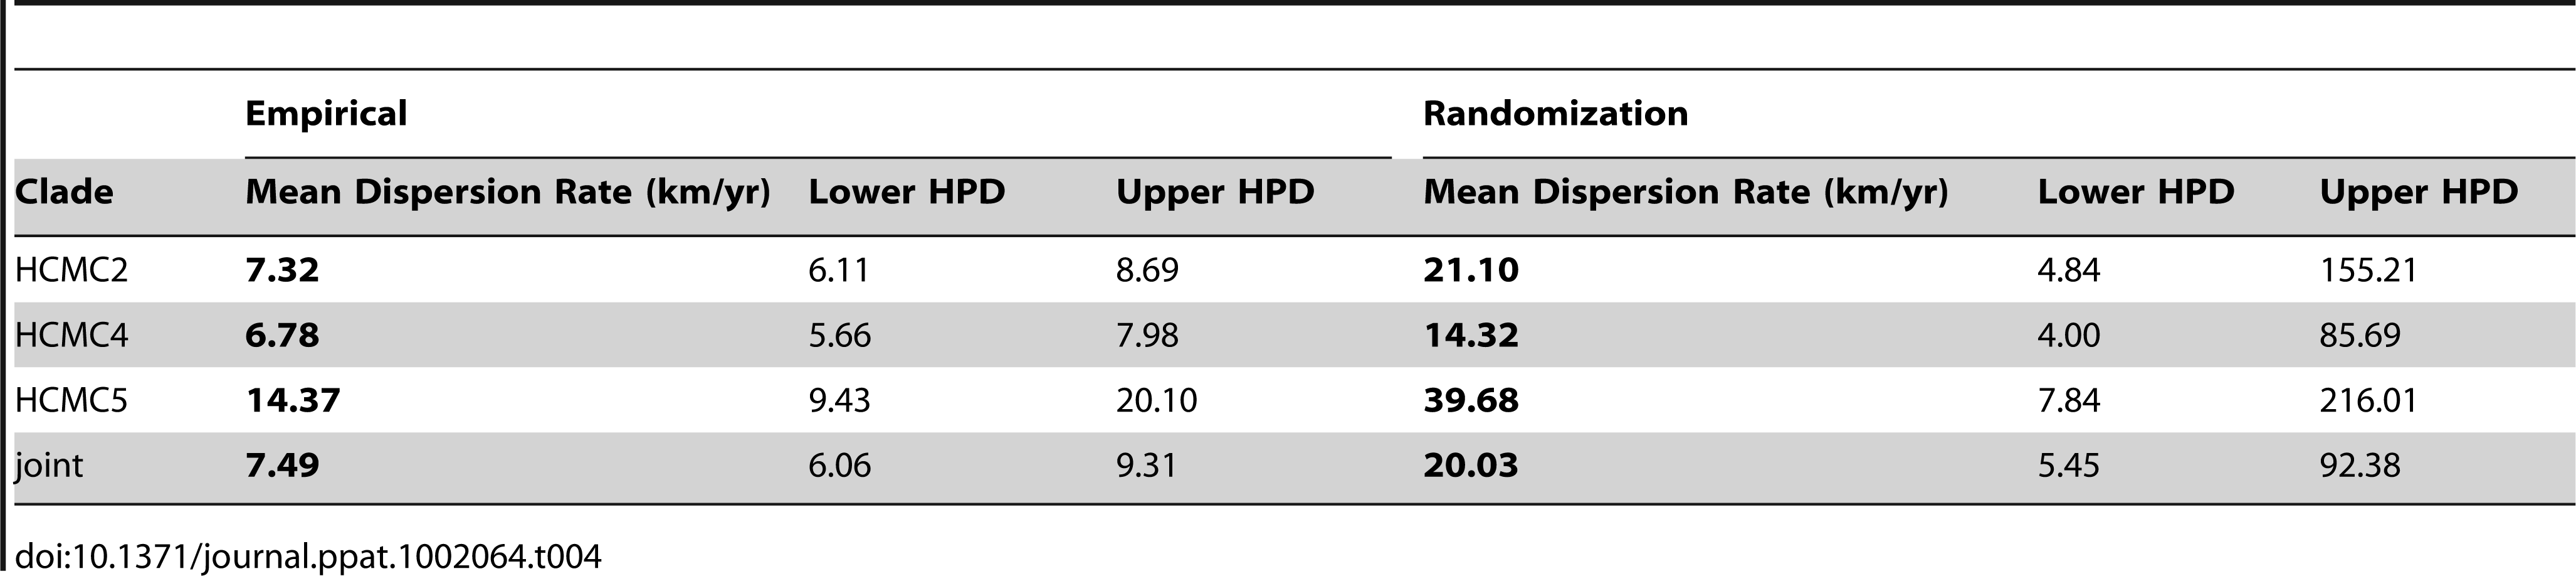 Results from randomizing locations at the tips to test the upper limits of the dispersion rates of DENV-1 in HCMC, Viet Nam.